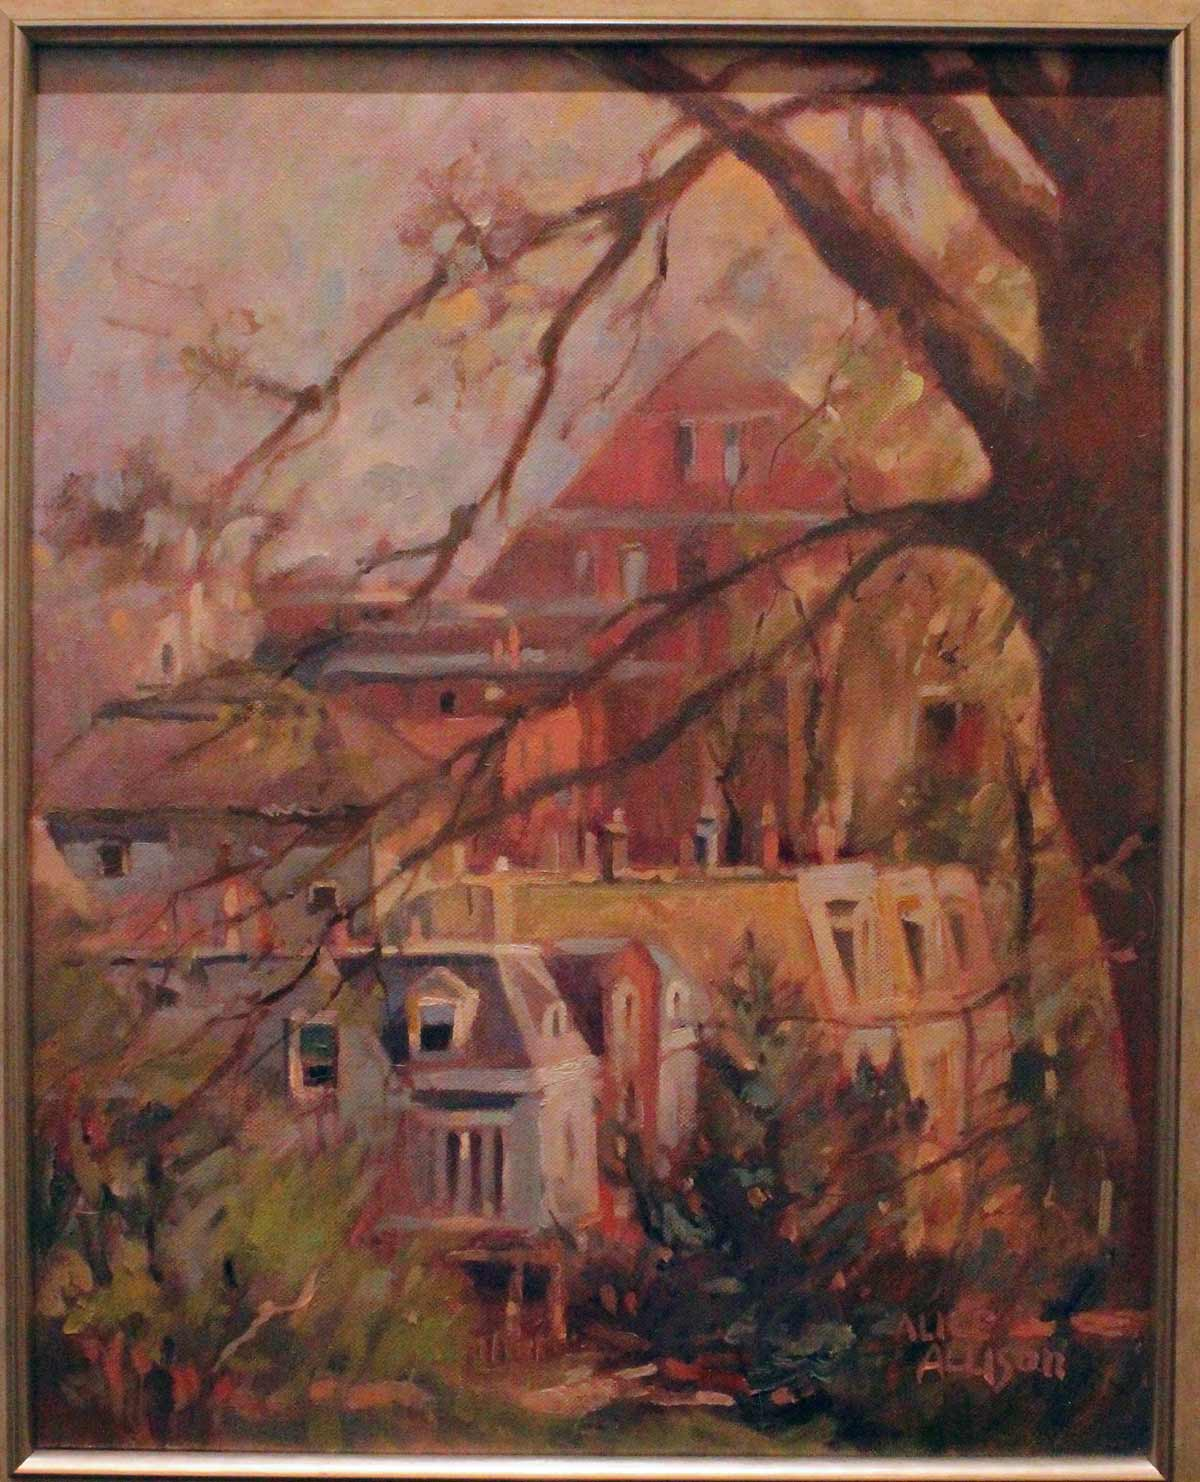 Allison-View-from-Playhouse-Private-Collection